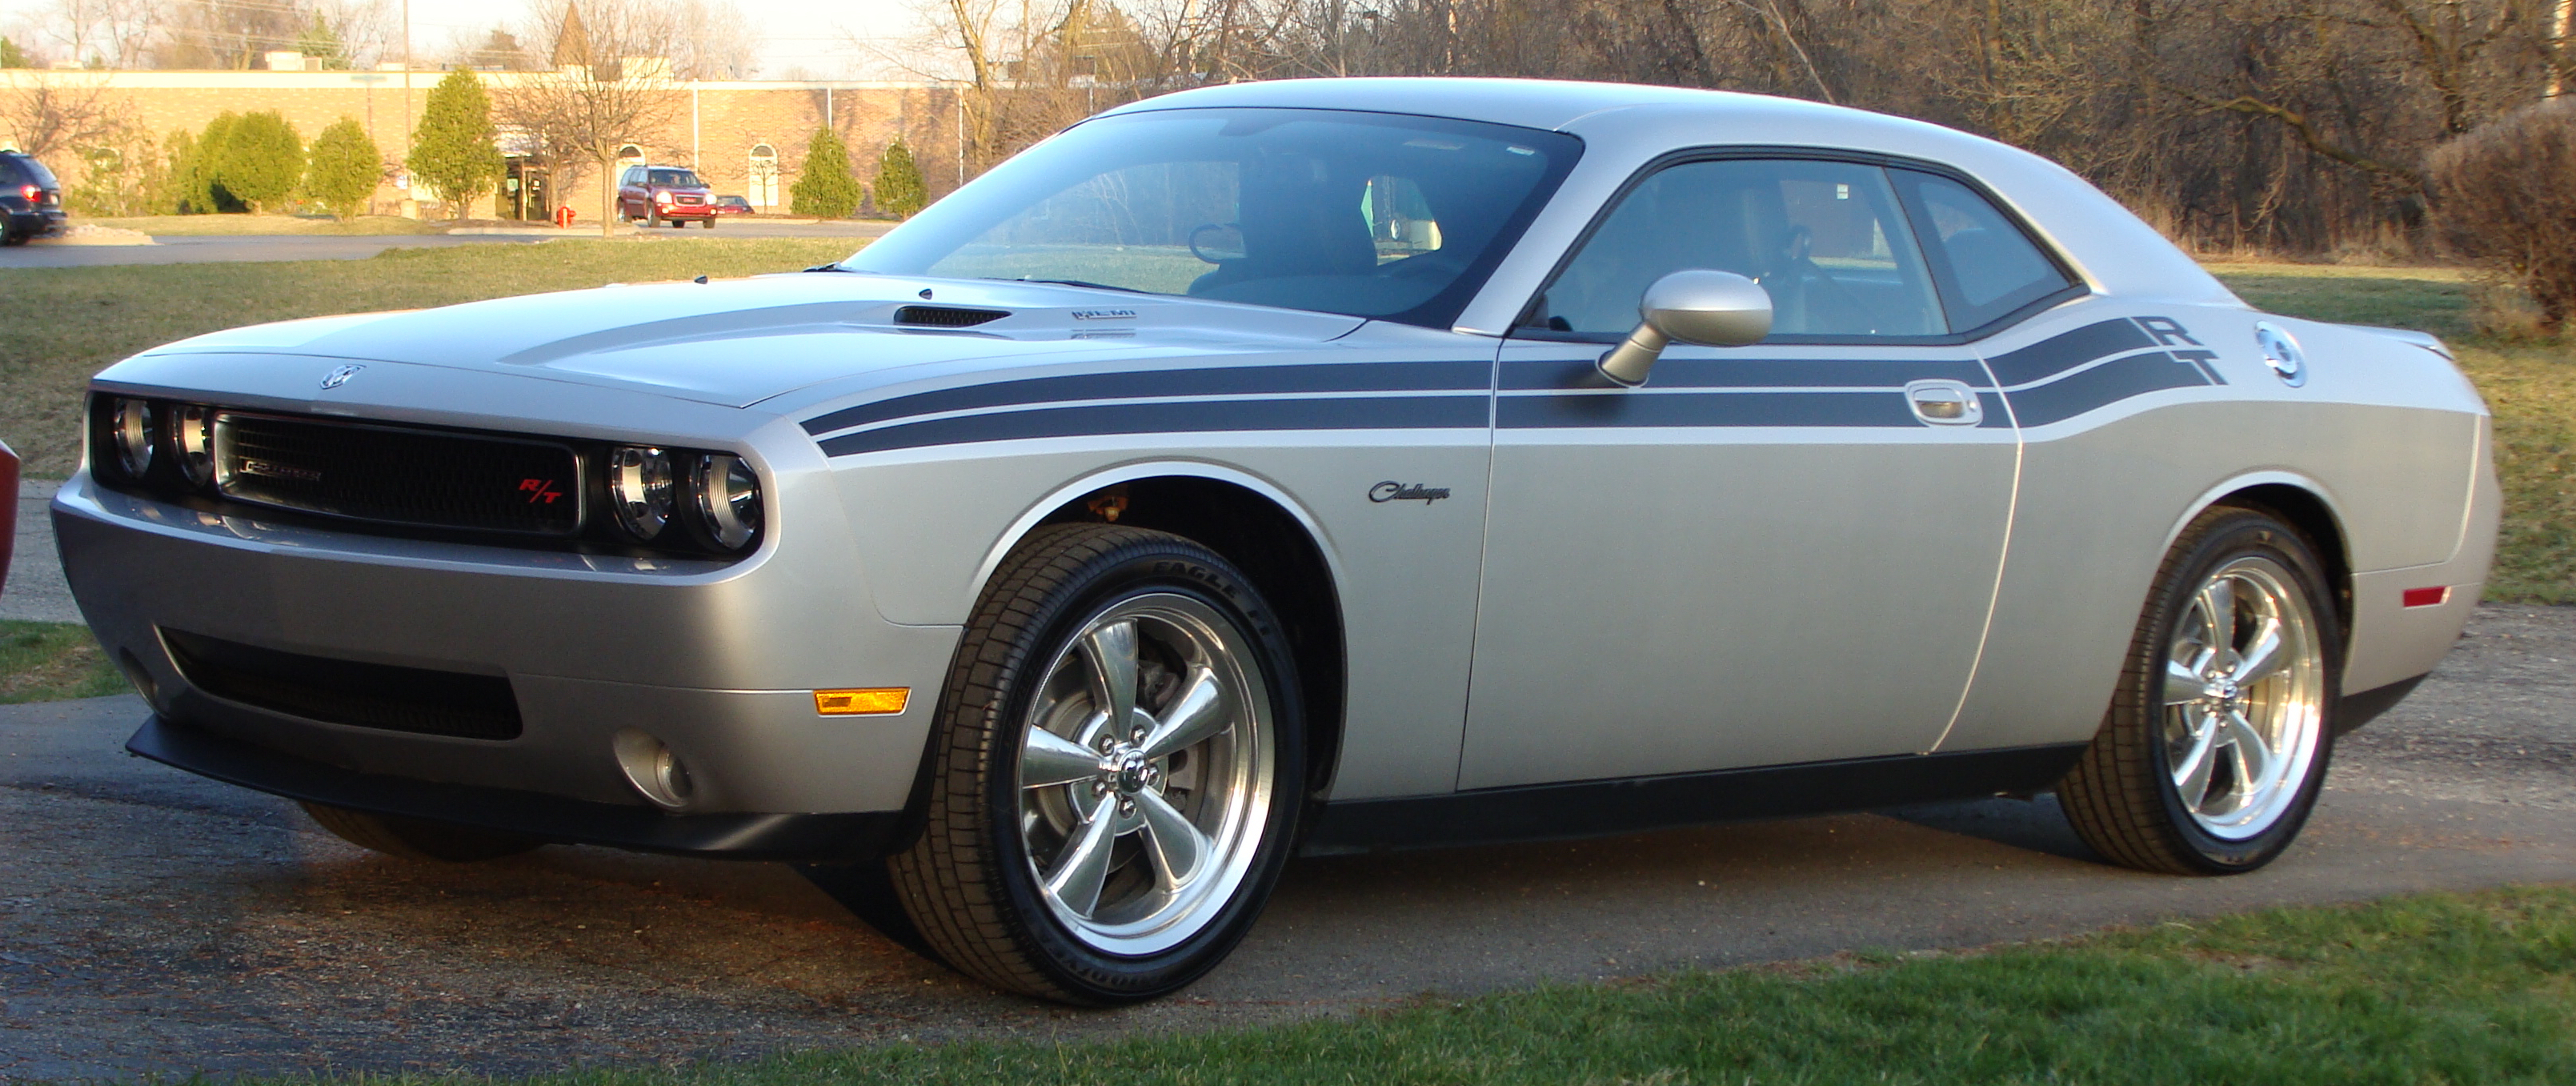 file:2010 dodge challenger rt classic - wikimedia commons